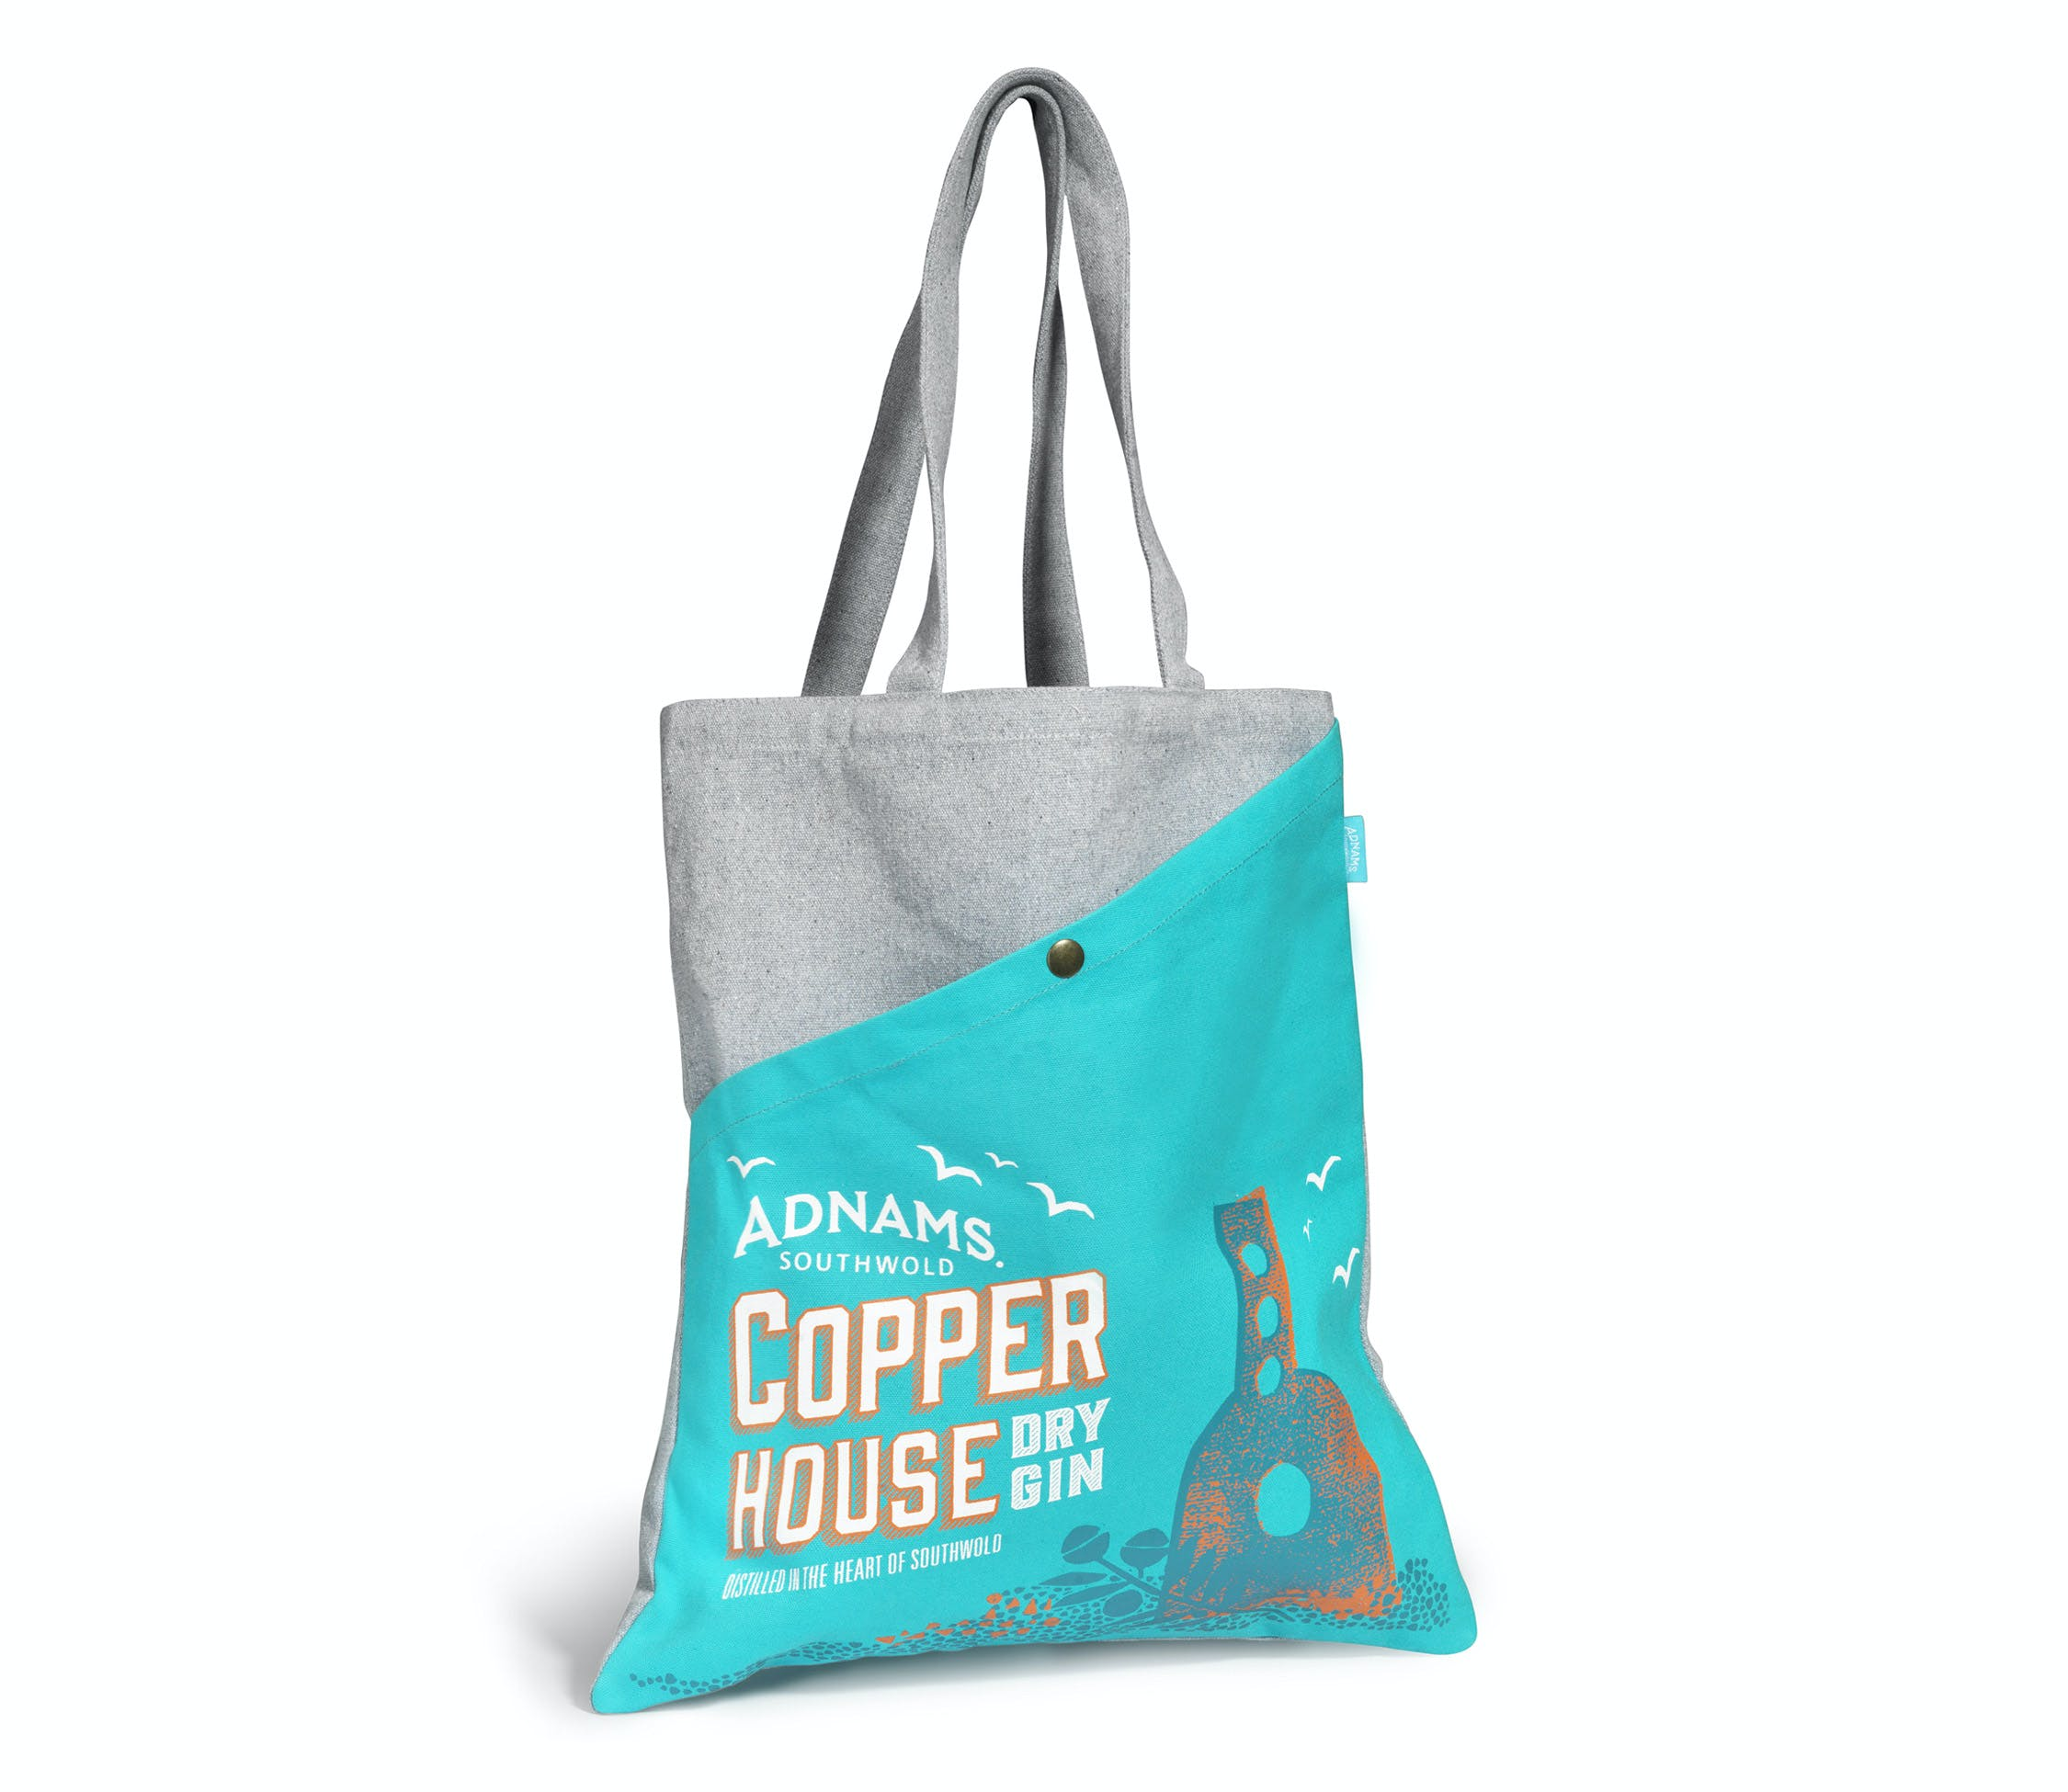 Bargain Adnams Copper House Gin Tote Bag Stockists